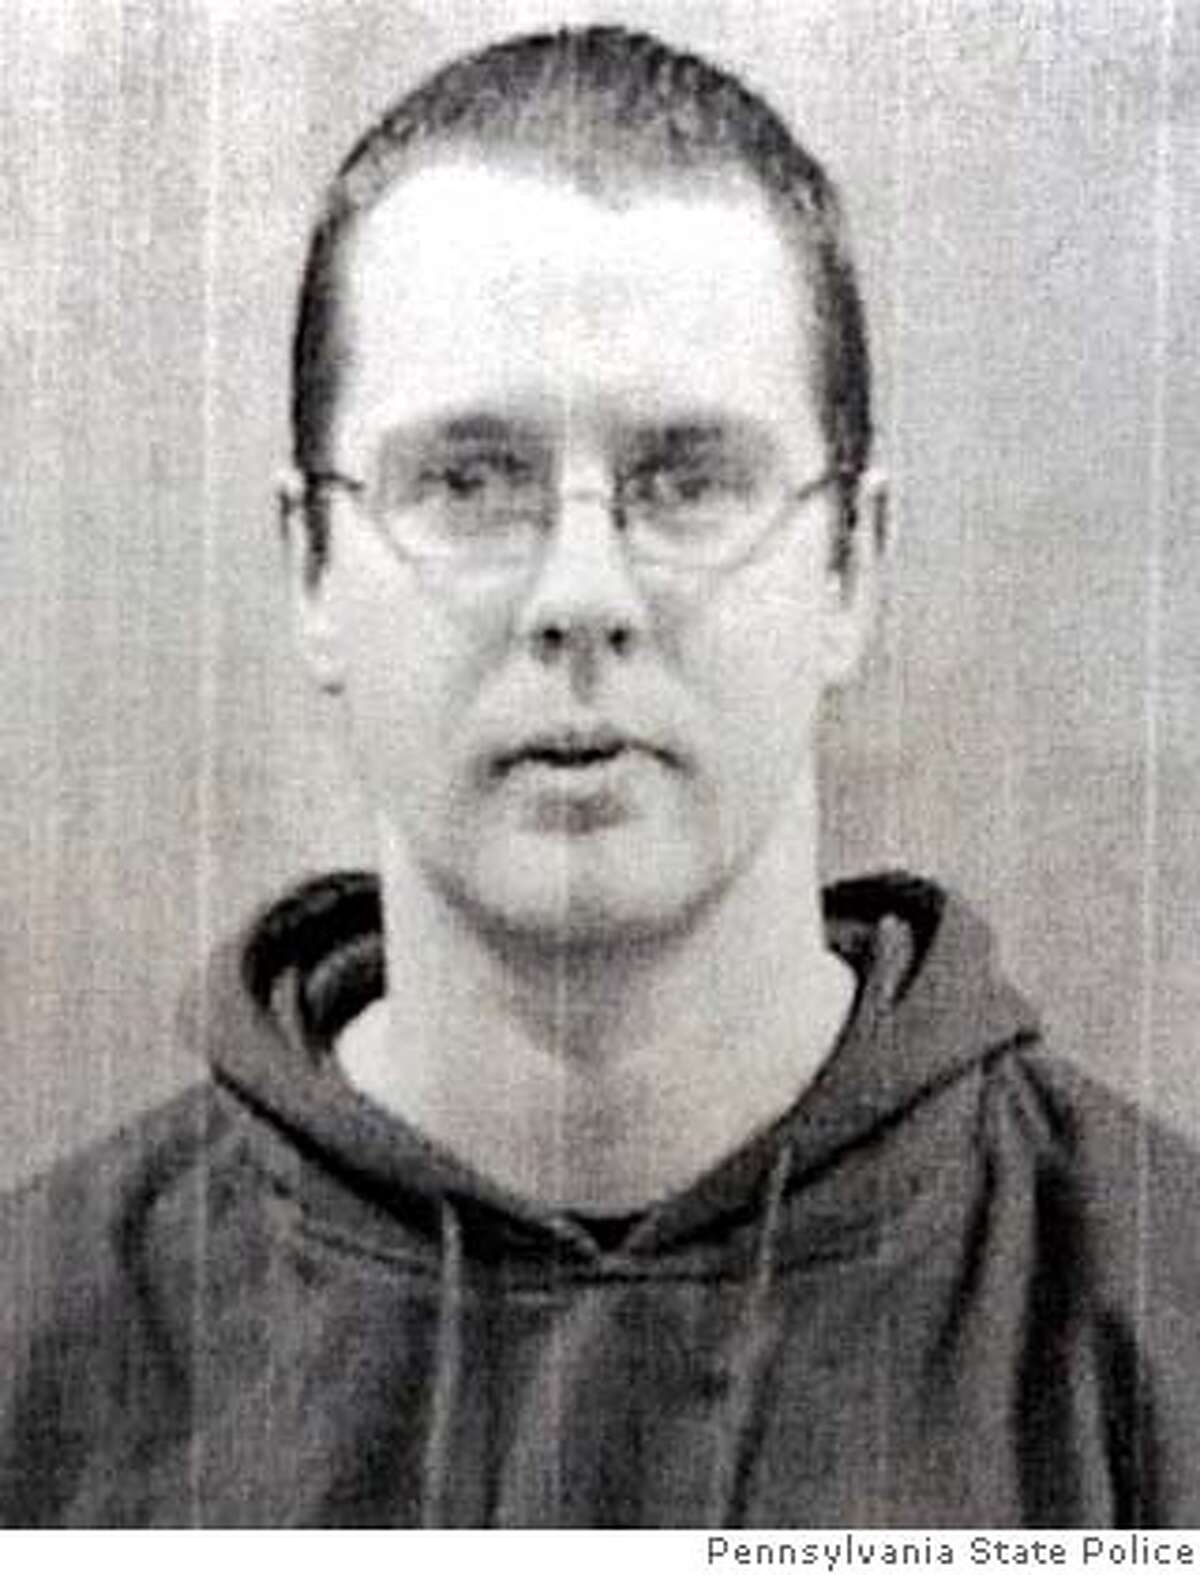 Charles Carl Roberts, a 32-year-old diary truck driver, whom police identified as the gunman who killed three schoolgirls execution style and then shot himself dead in a schoolhouse in Nickel Mines, Pennsylvania, is seen in this police handout released October 2, 2006. The incident was the third U.S. school shooting in less than a week. EDITORIAL USE ONLY REUTERS/Pennsylvania State Police Photo/Handout (UNITED STATES) 0